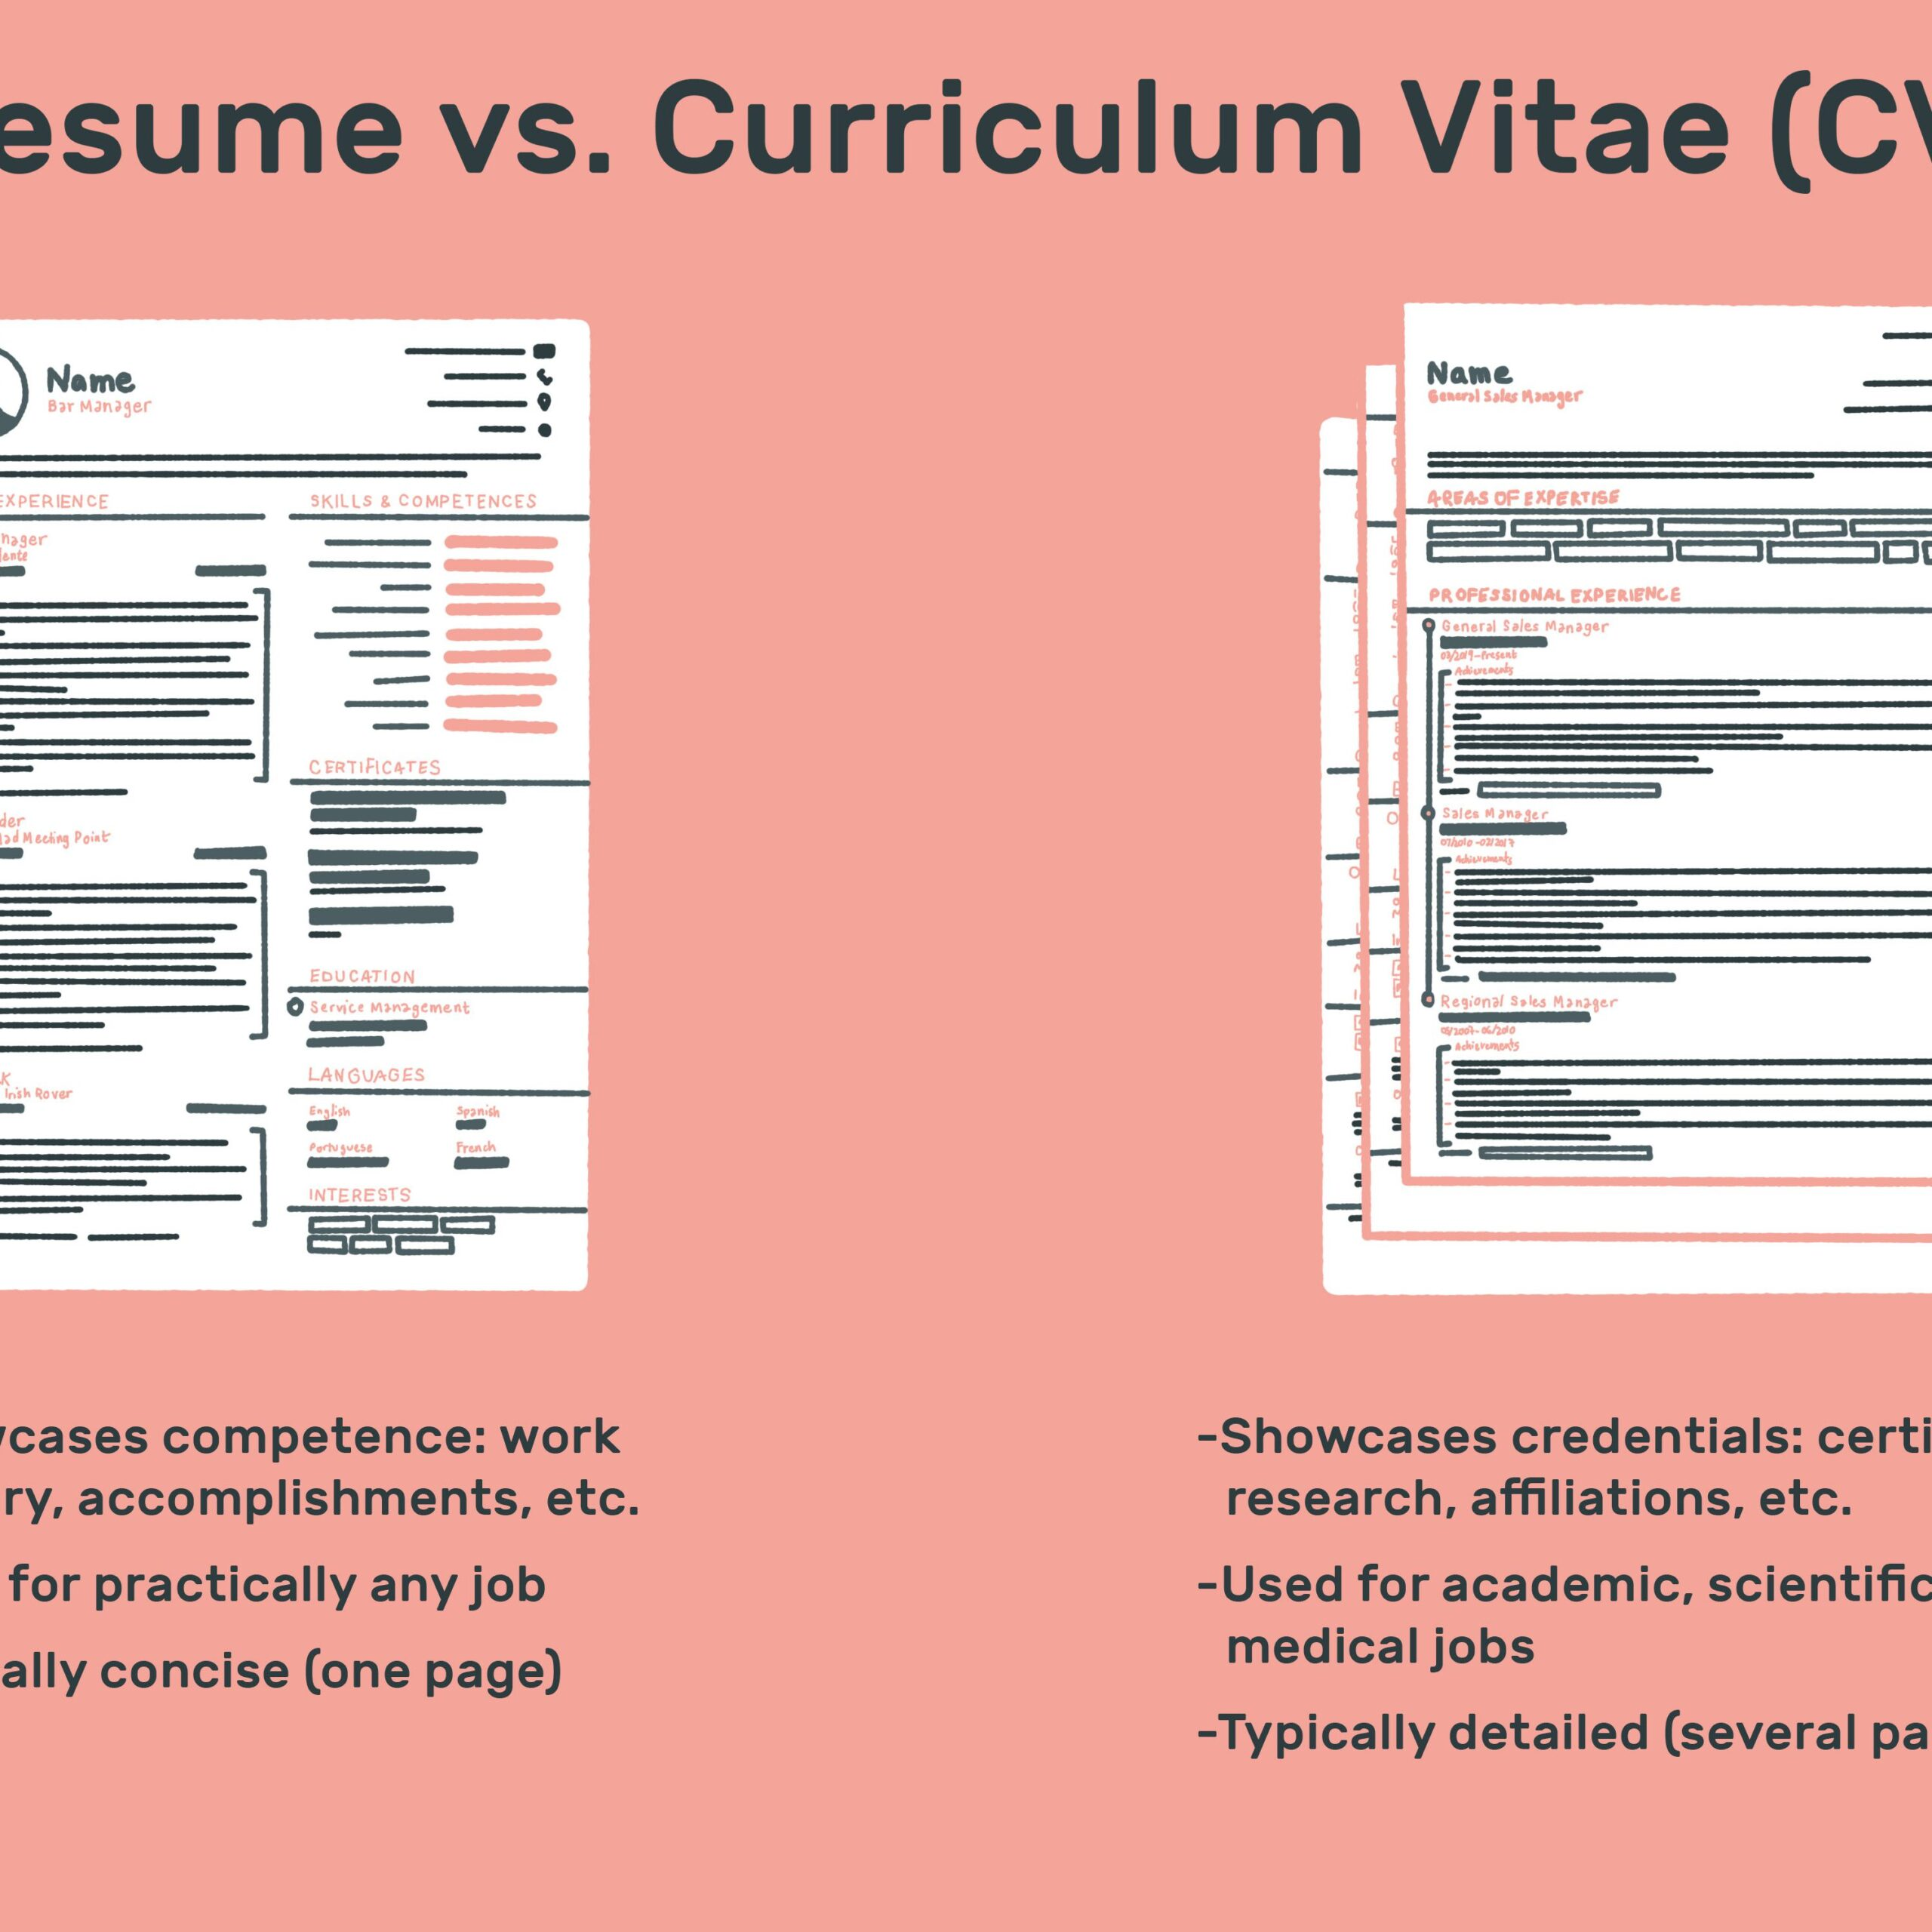 job resume vs cv difference between and curriculum vitae final quantify your Resume Difference Between Resume And Curriculum Vitae